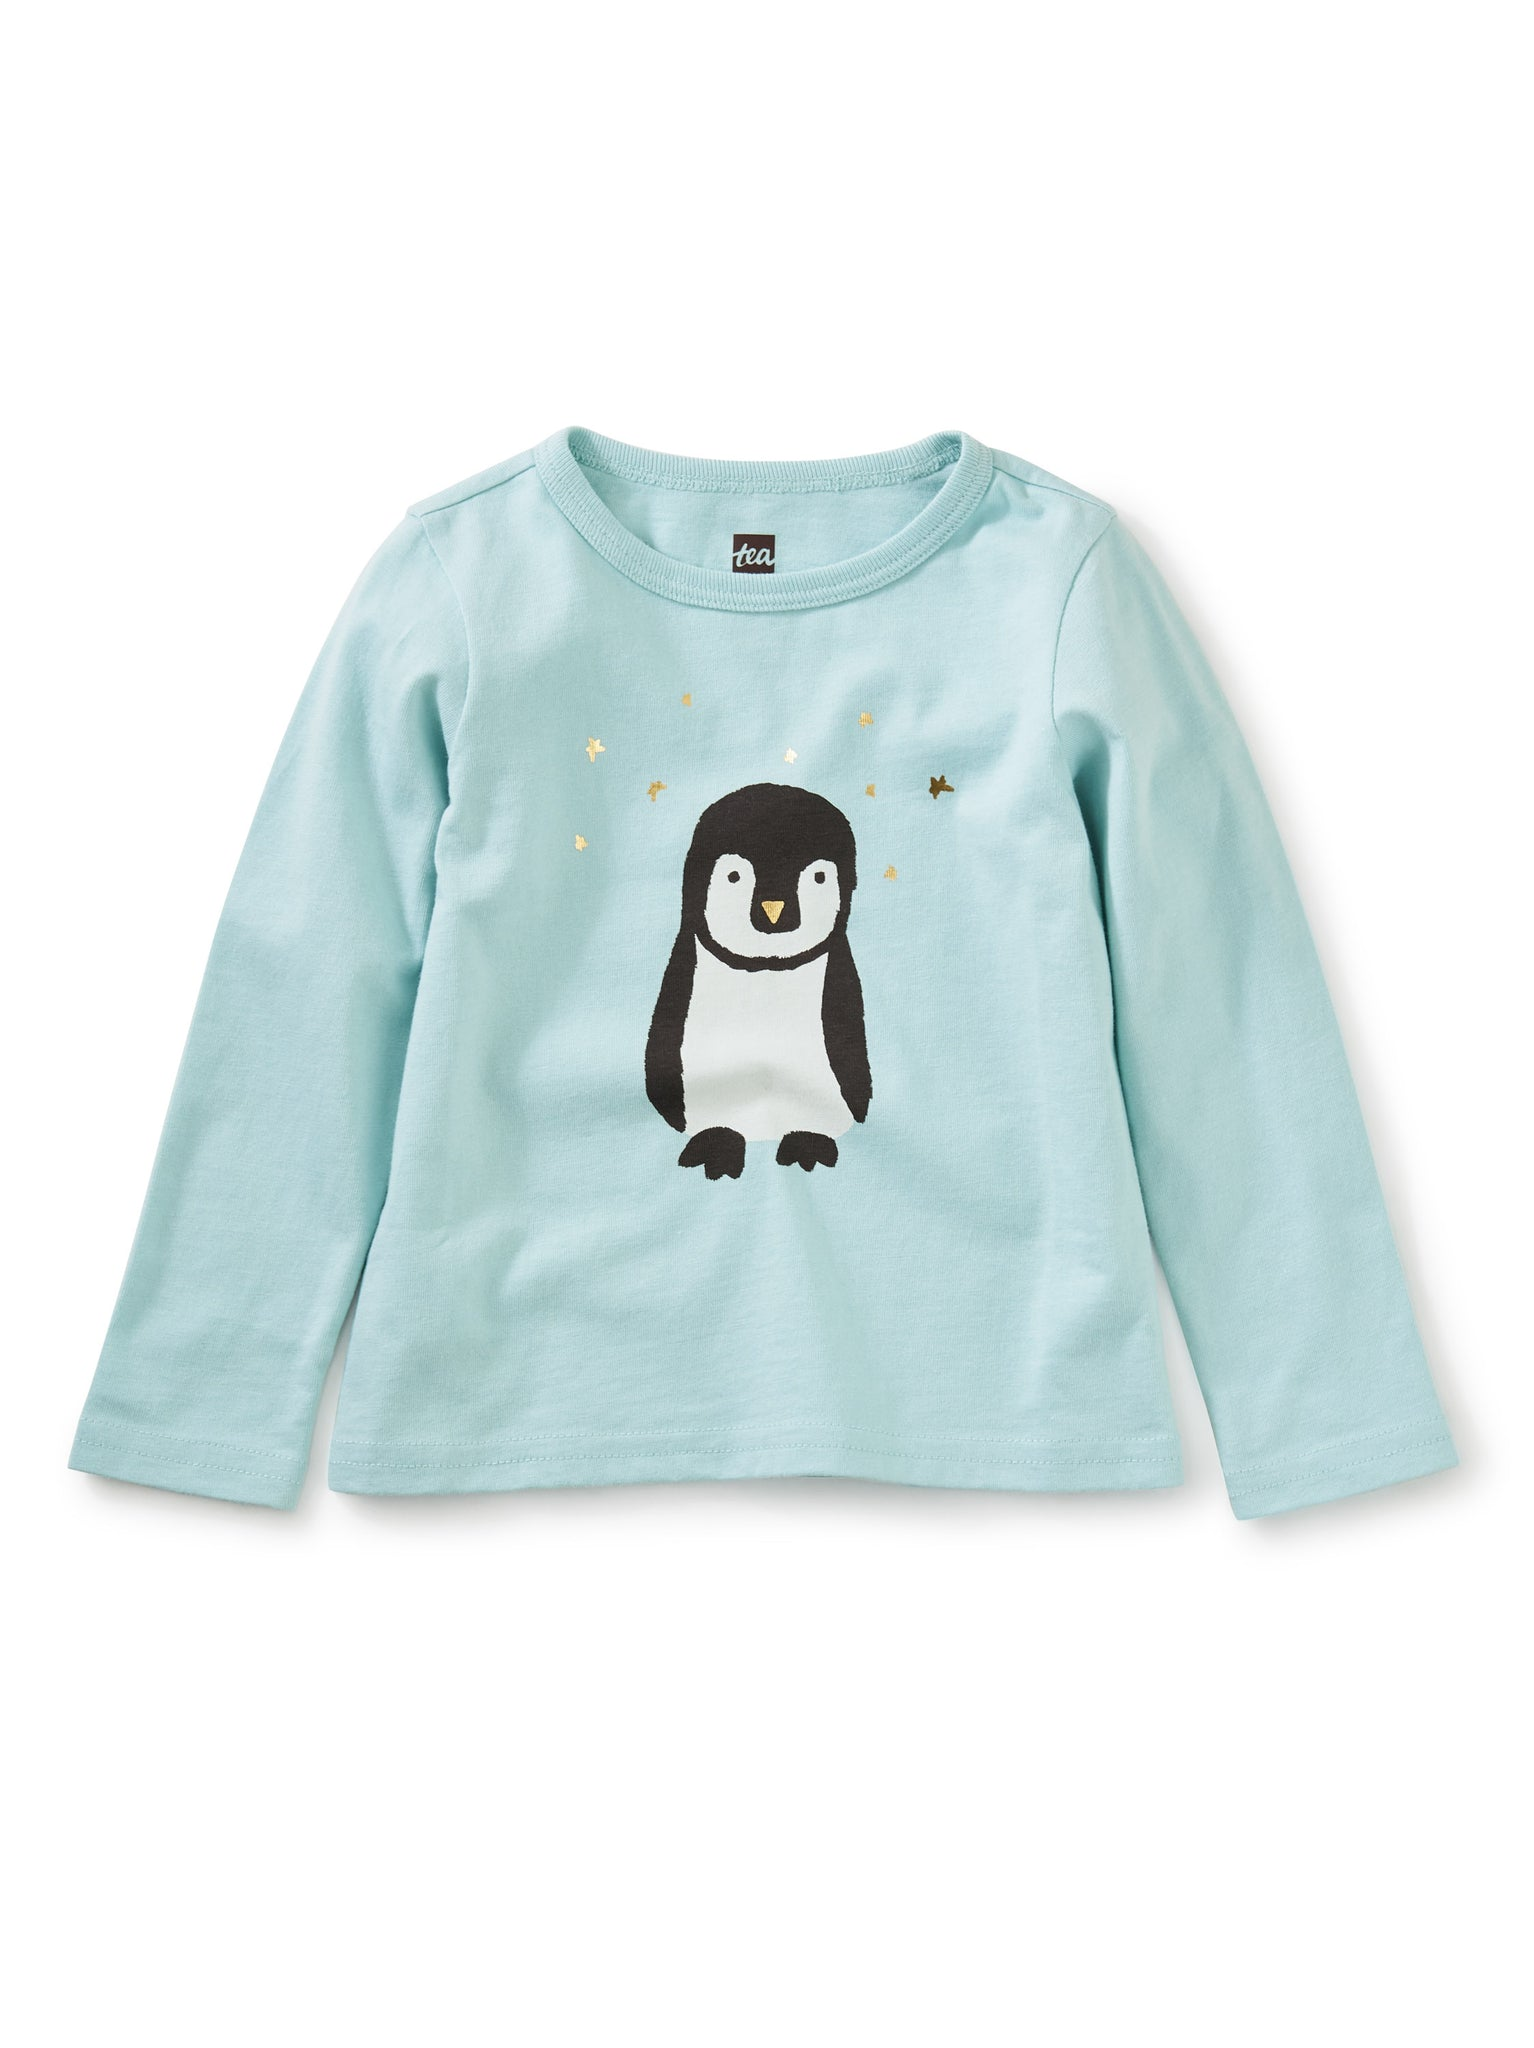 Penguin Metallic Graphic Tee - Canal Blue